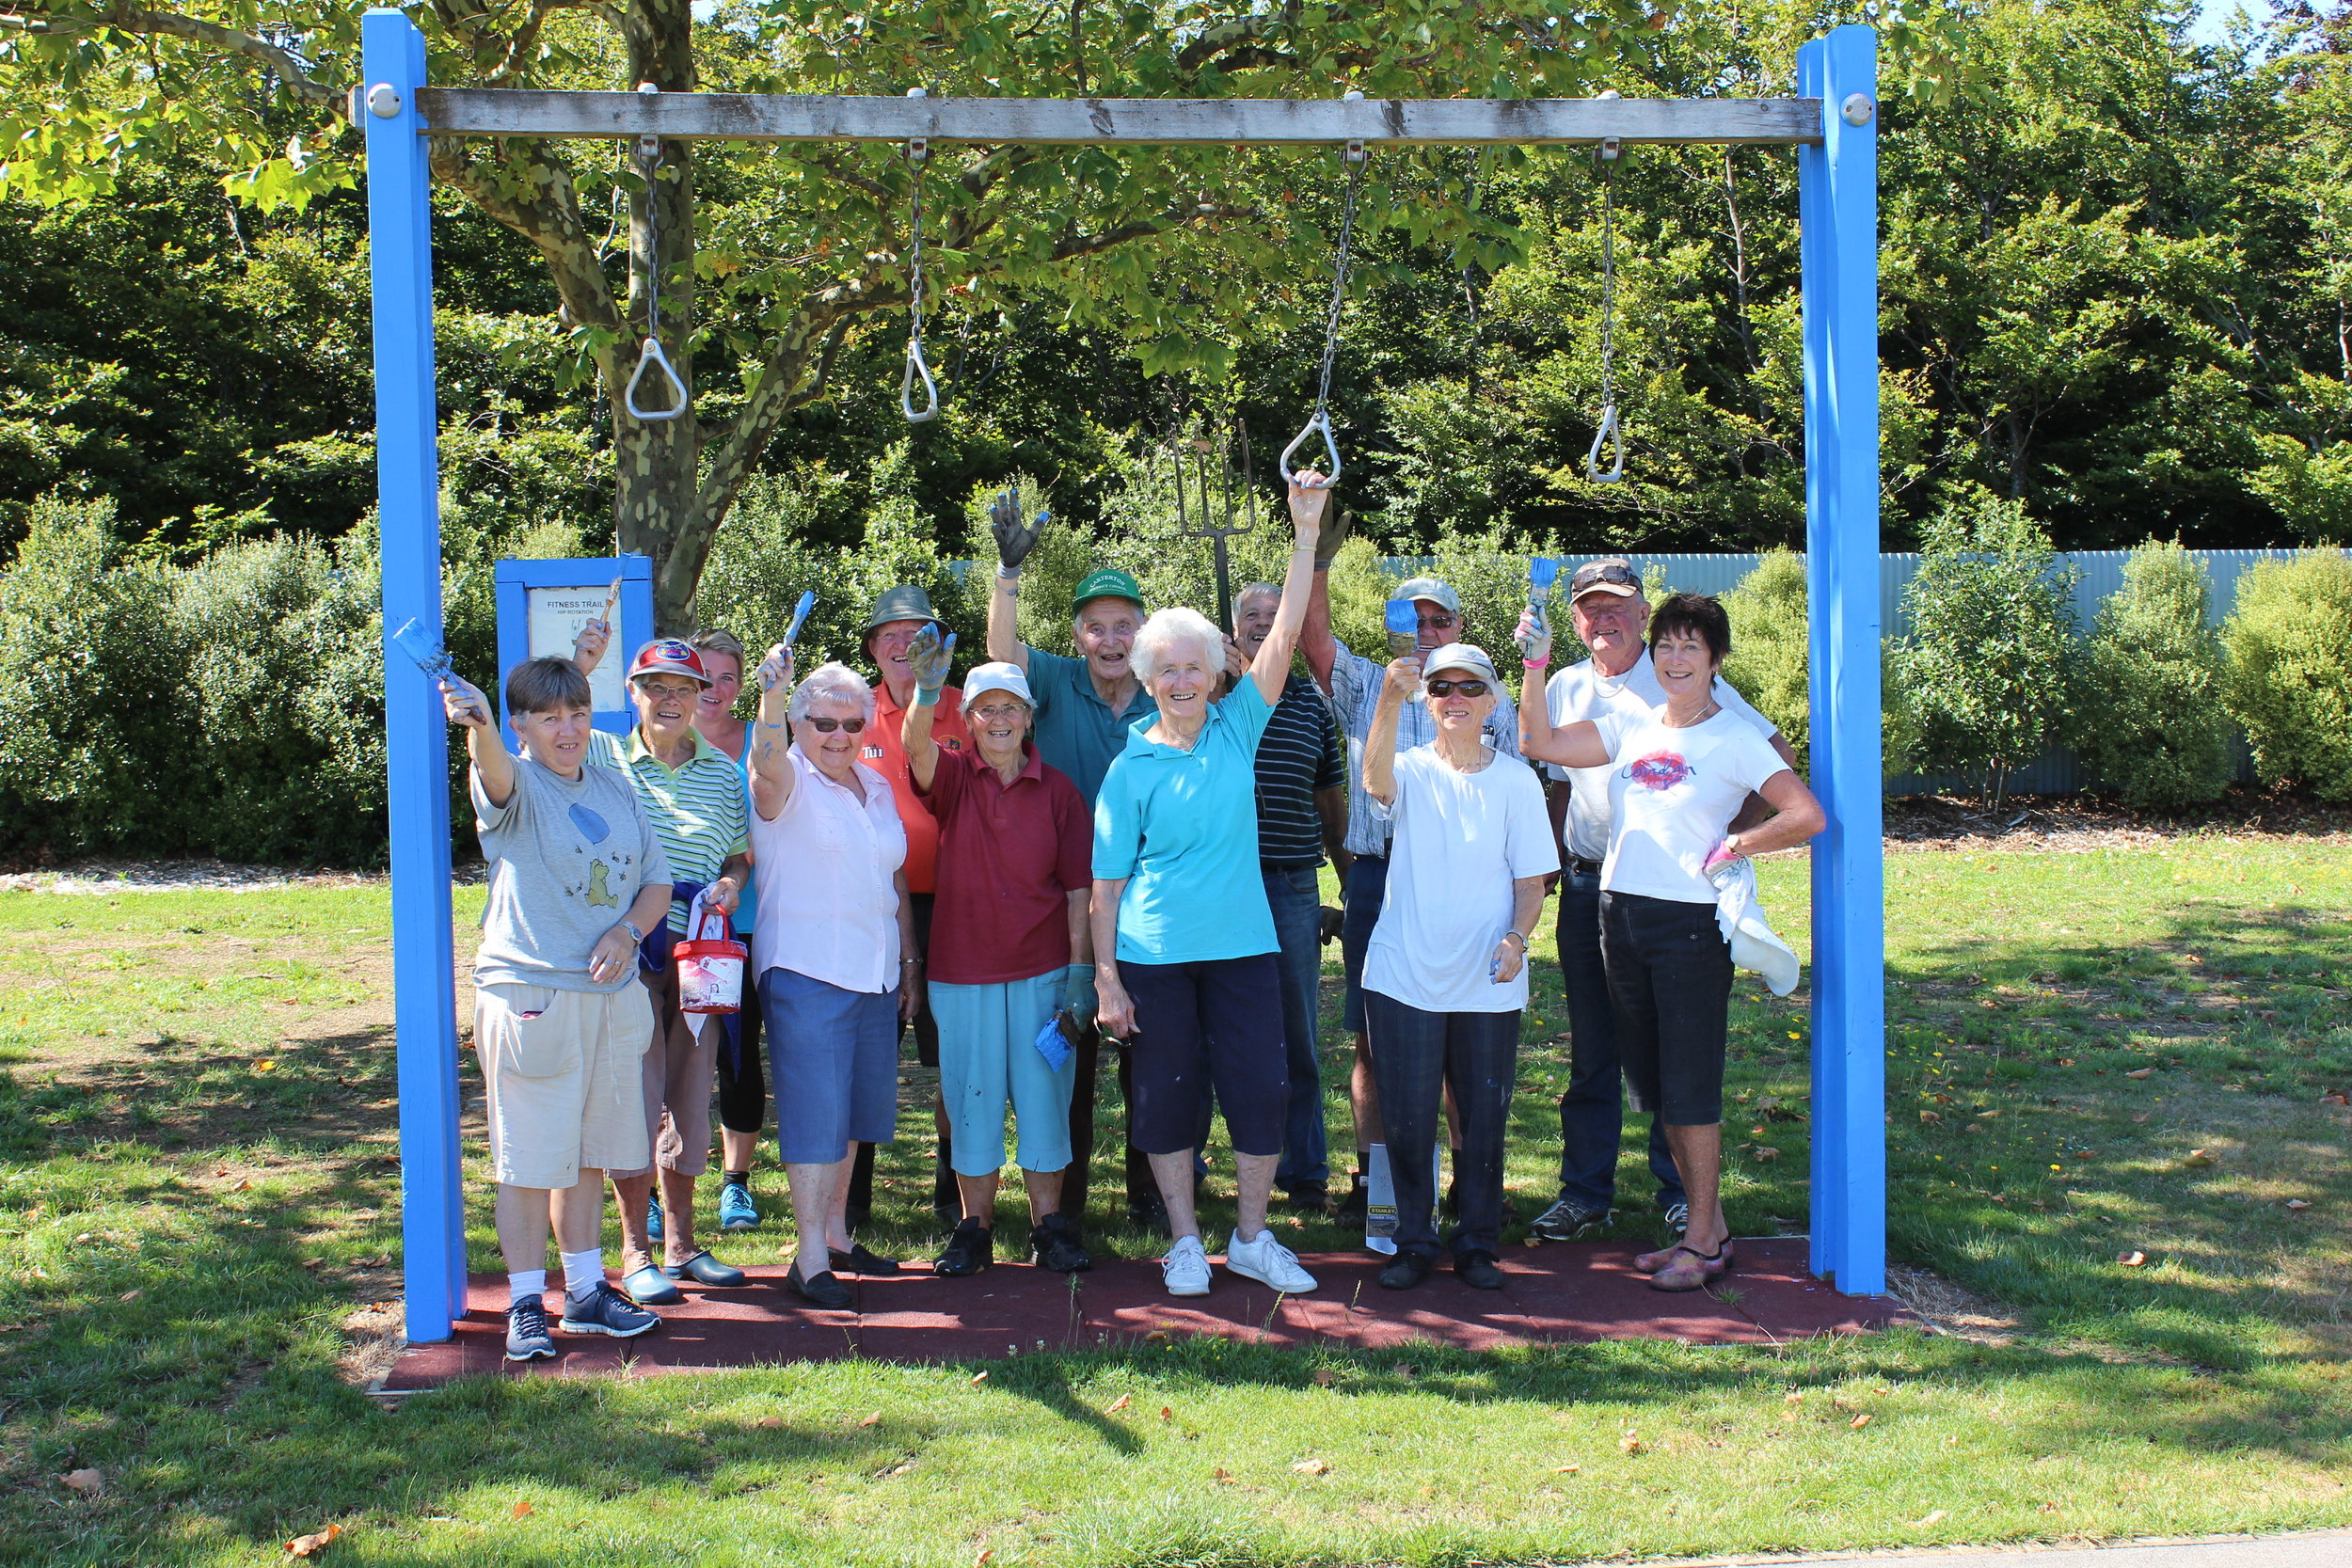 Repainting the exercise equipment at Carrington Park